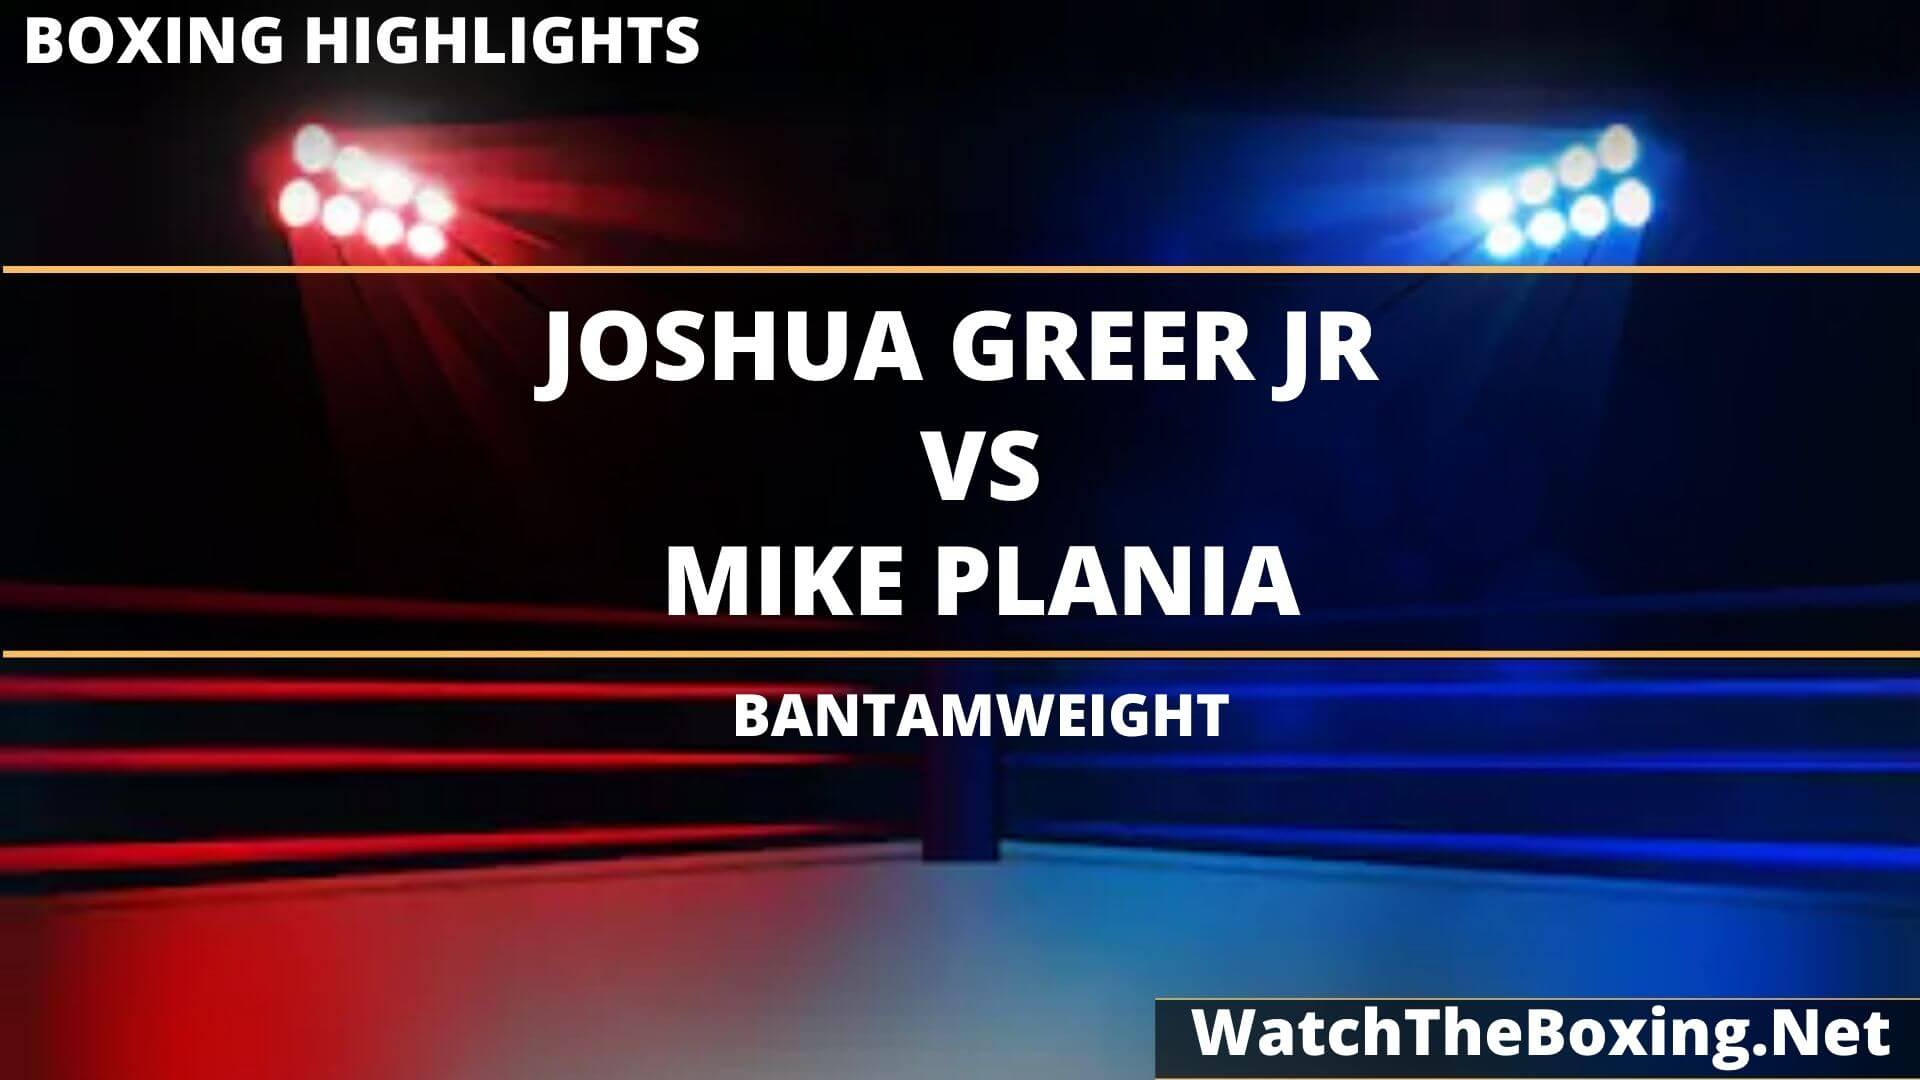 Joshua Greer Vs Mike Plania Highlights 2020 Bantamweight